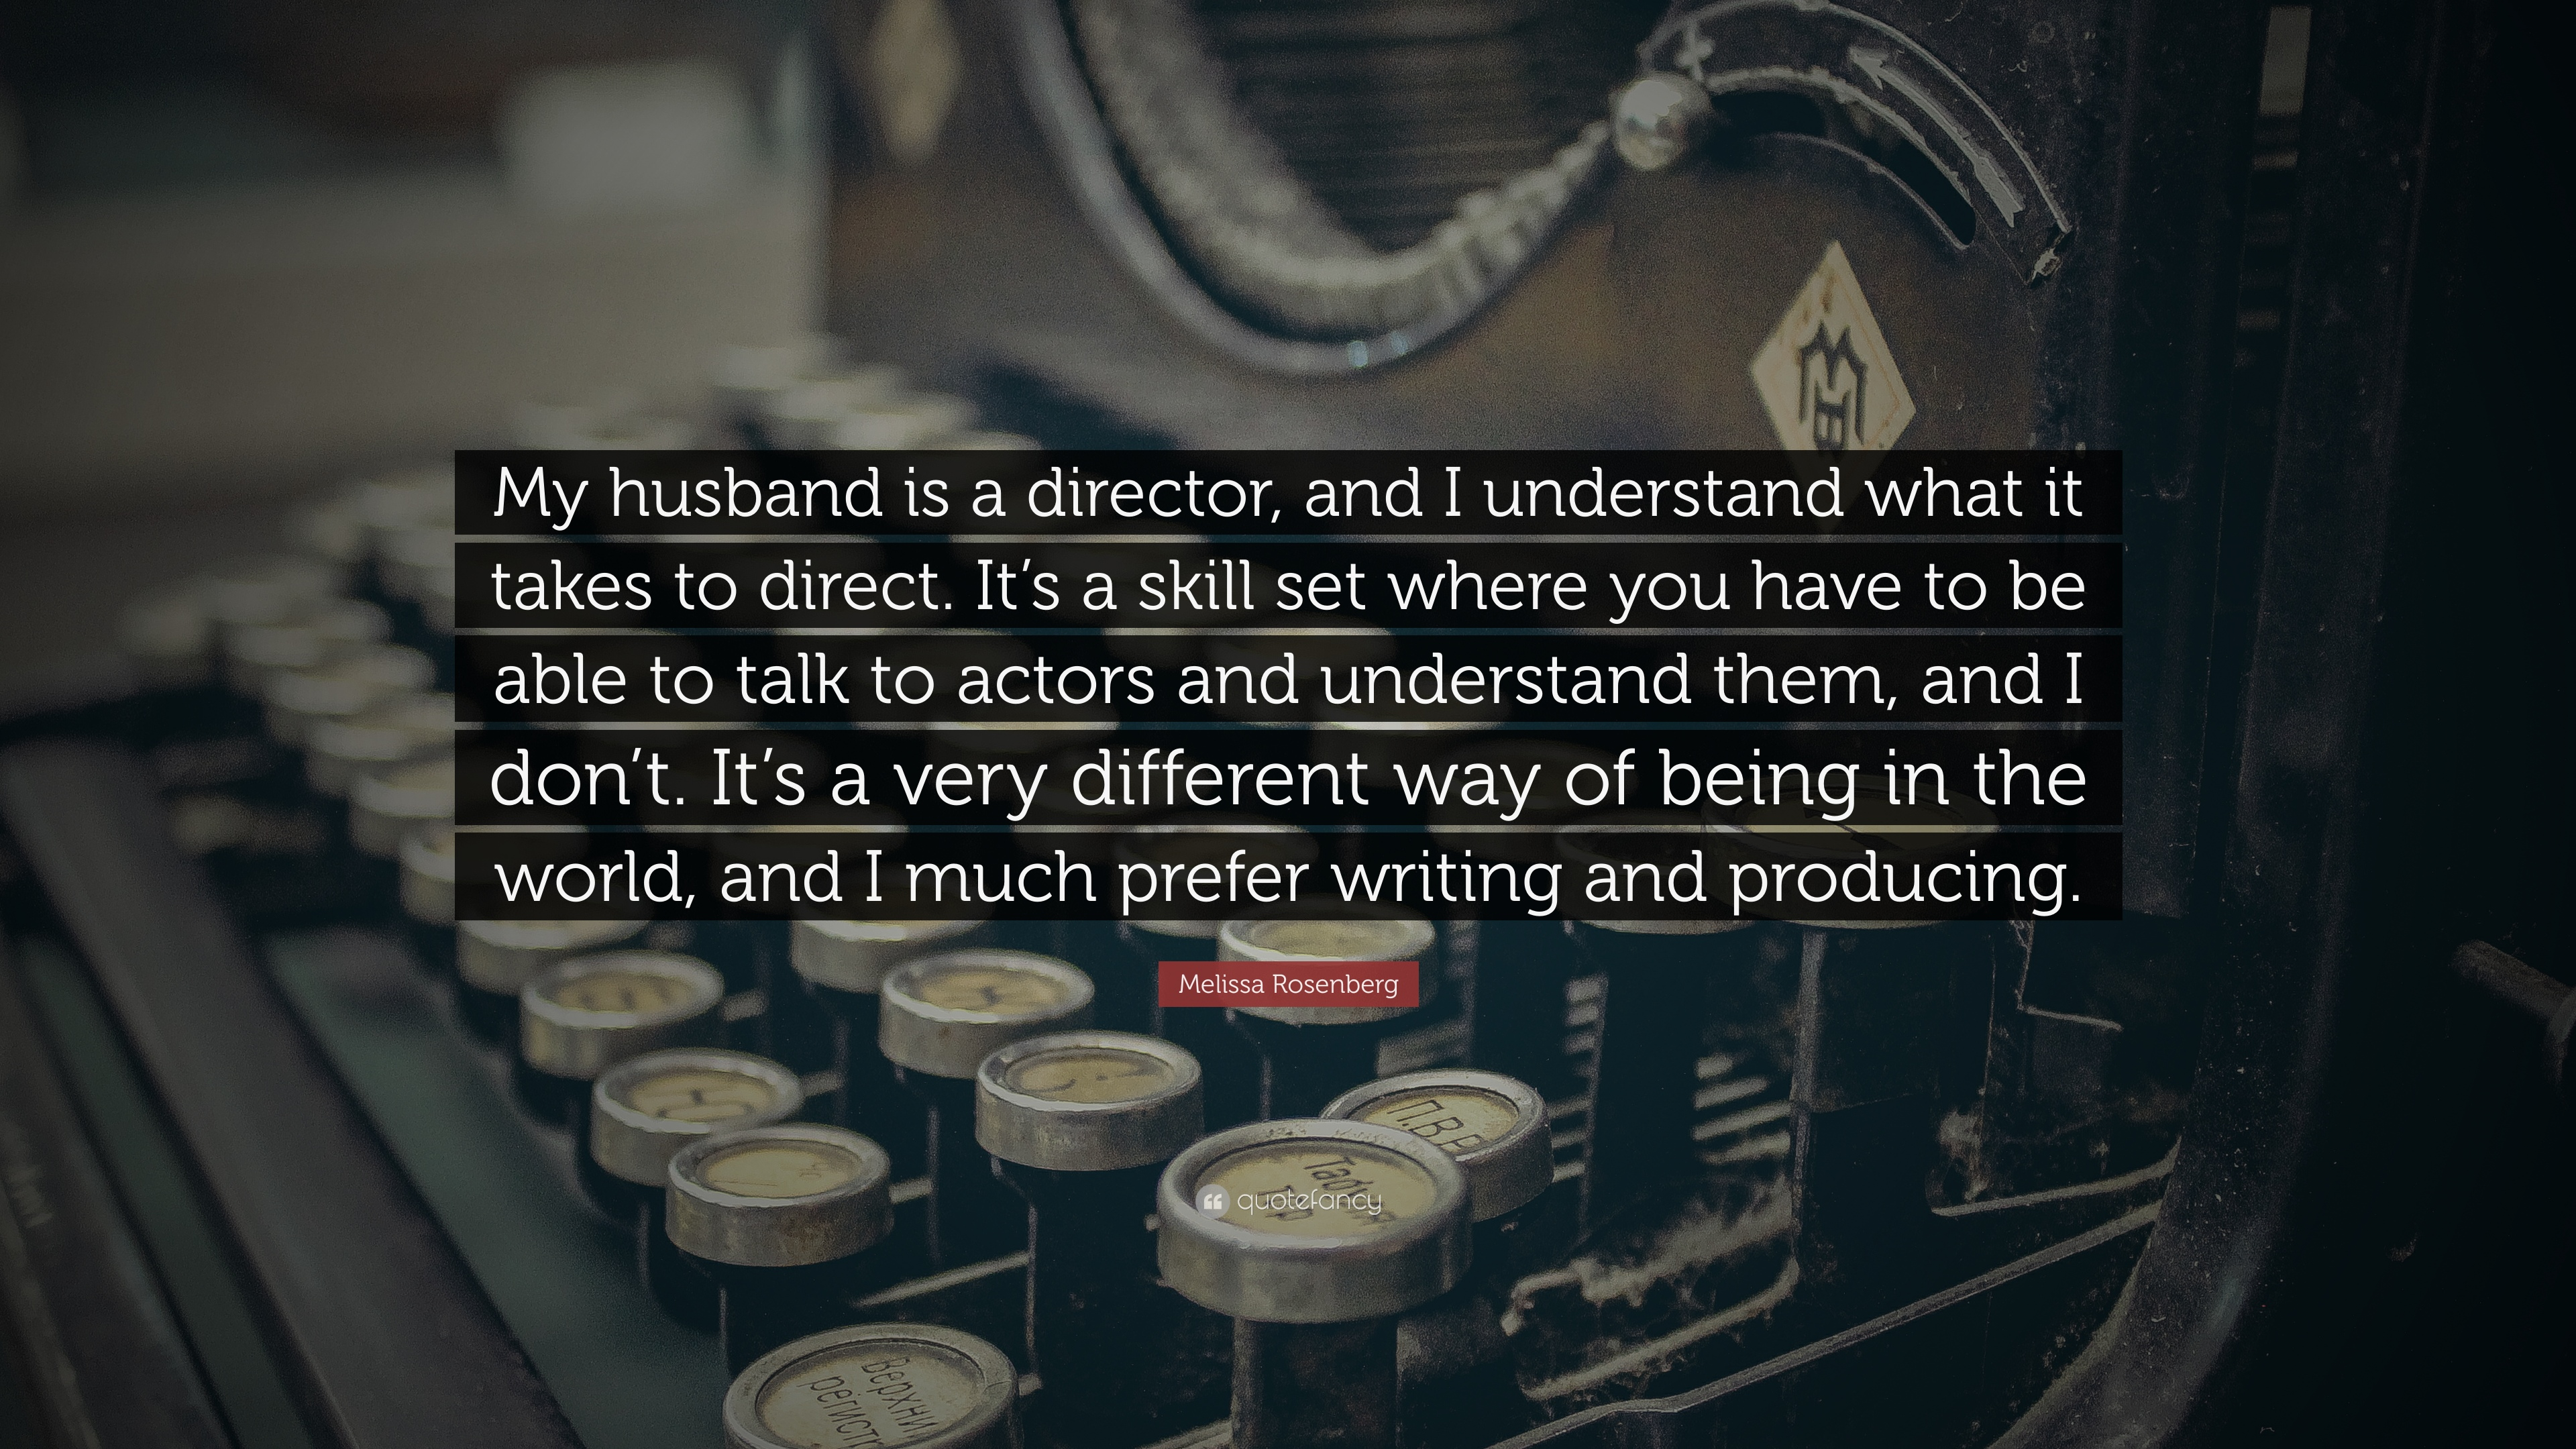 melissa rosenberg quote my husband is a director and i melissa rosenberg quote my husband is a director and i understand what it